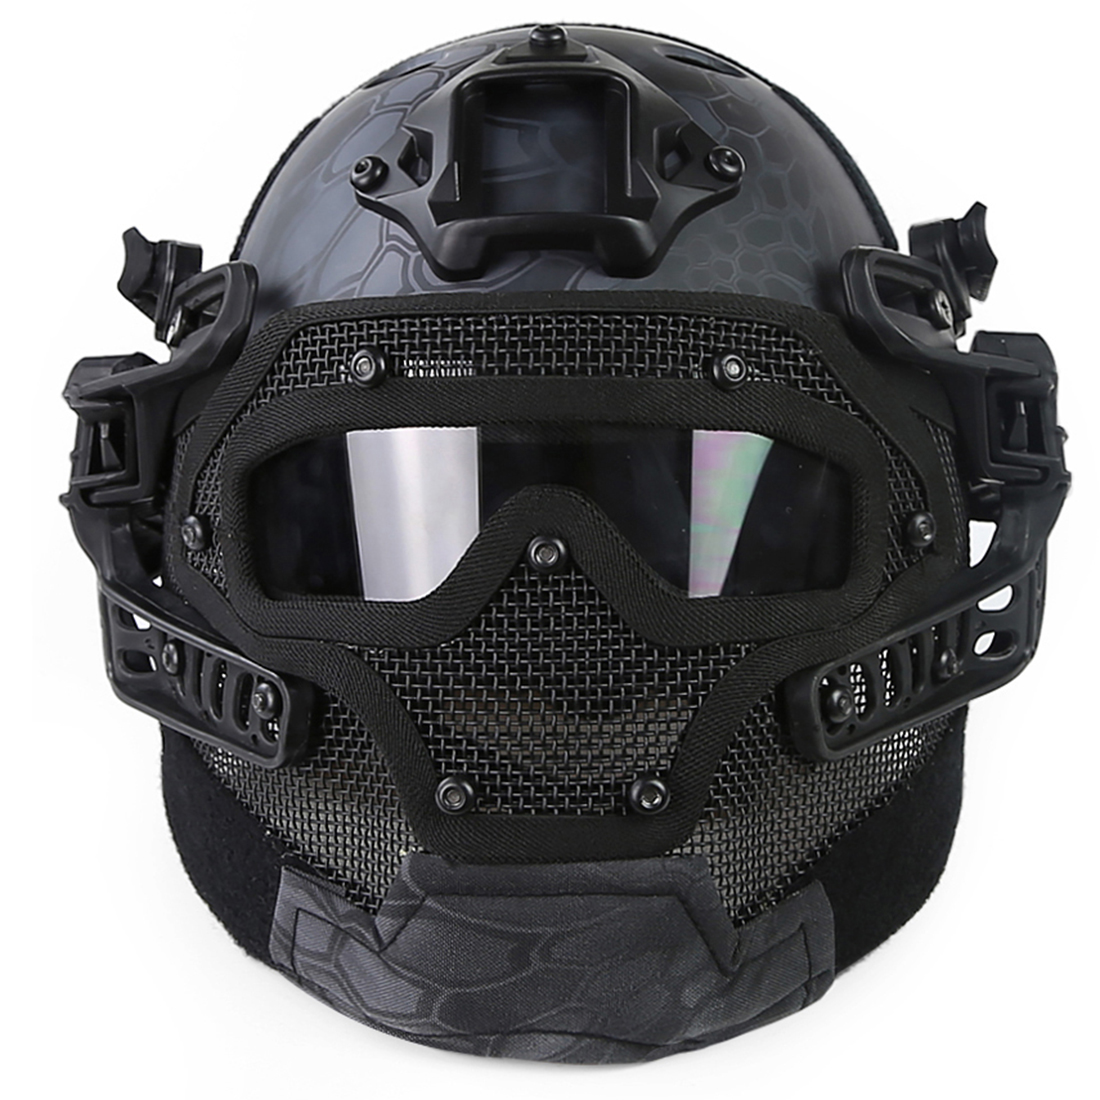 Rowsfire Steel Wire Protective FAST Helmet Suit for Outdoor Activity - Black Python Grain nfstrike steel wire protective fast helmet suit for airsoft military tactics helmet for nerf accessories games outdoor activity